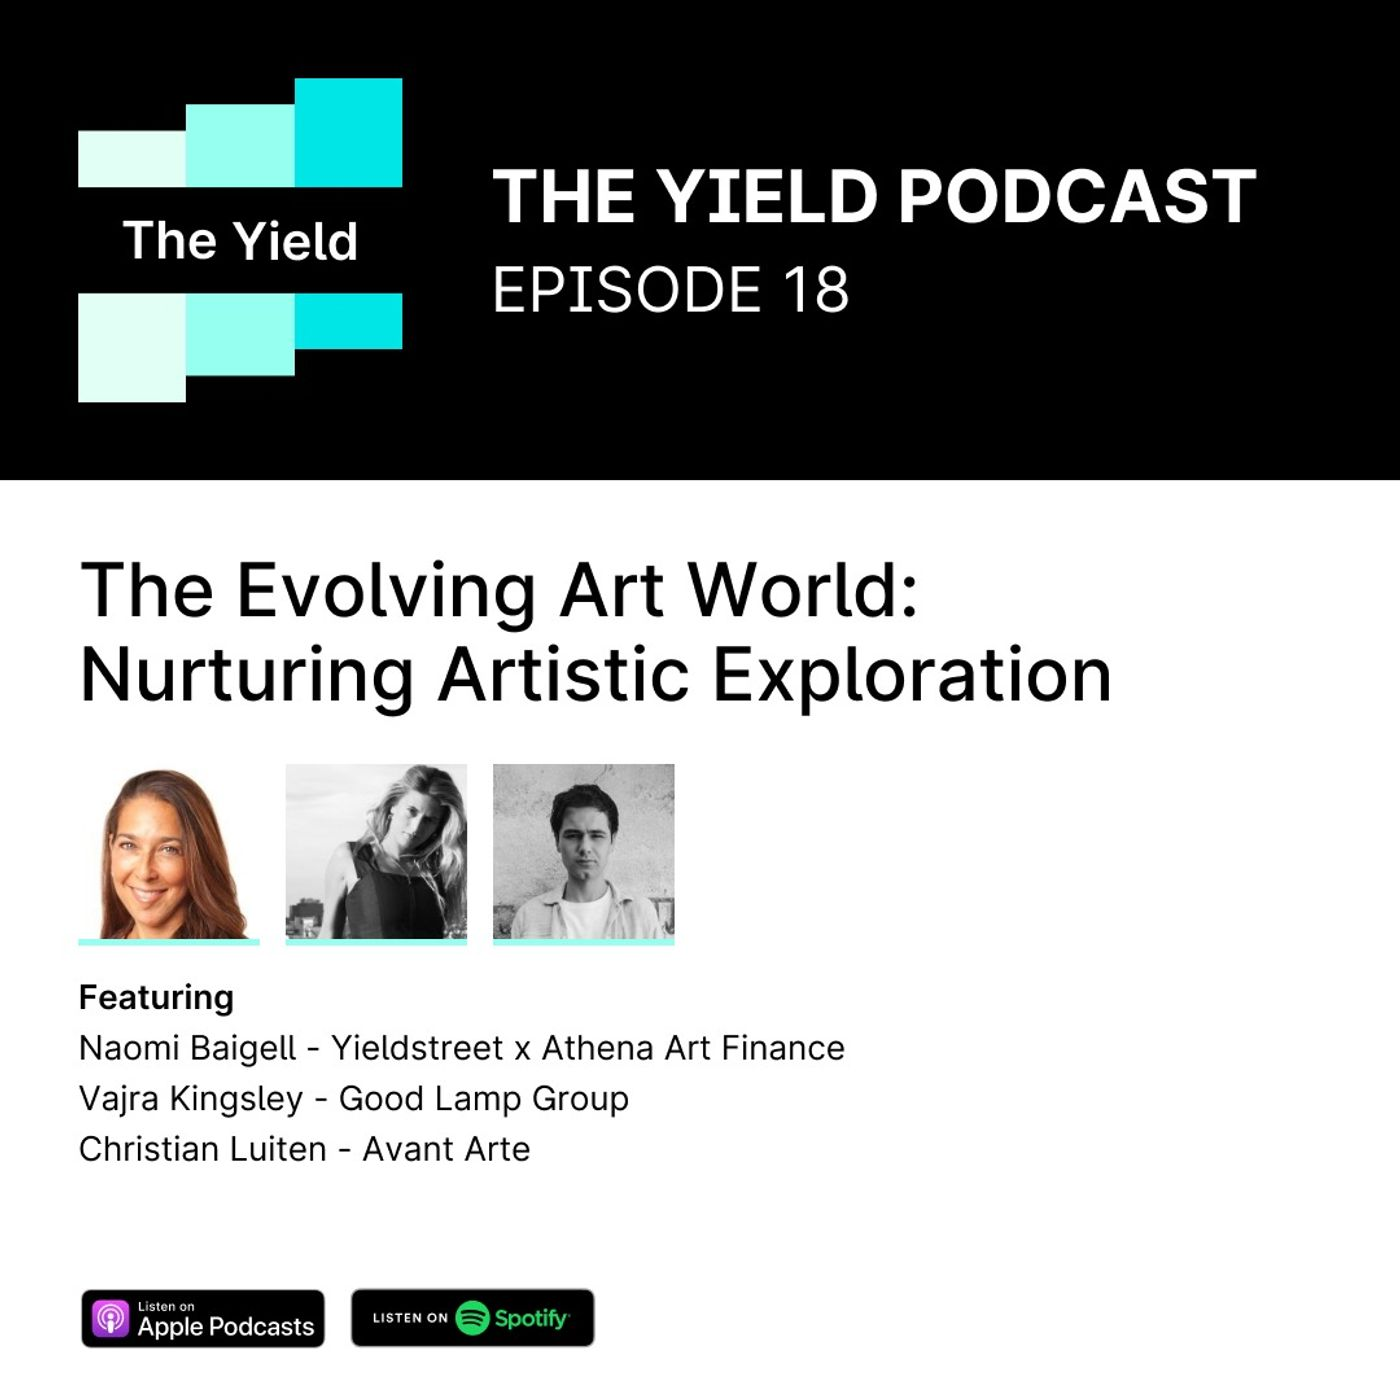 The Evolving Art World: Nurturing Artistic Exploration